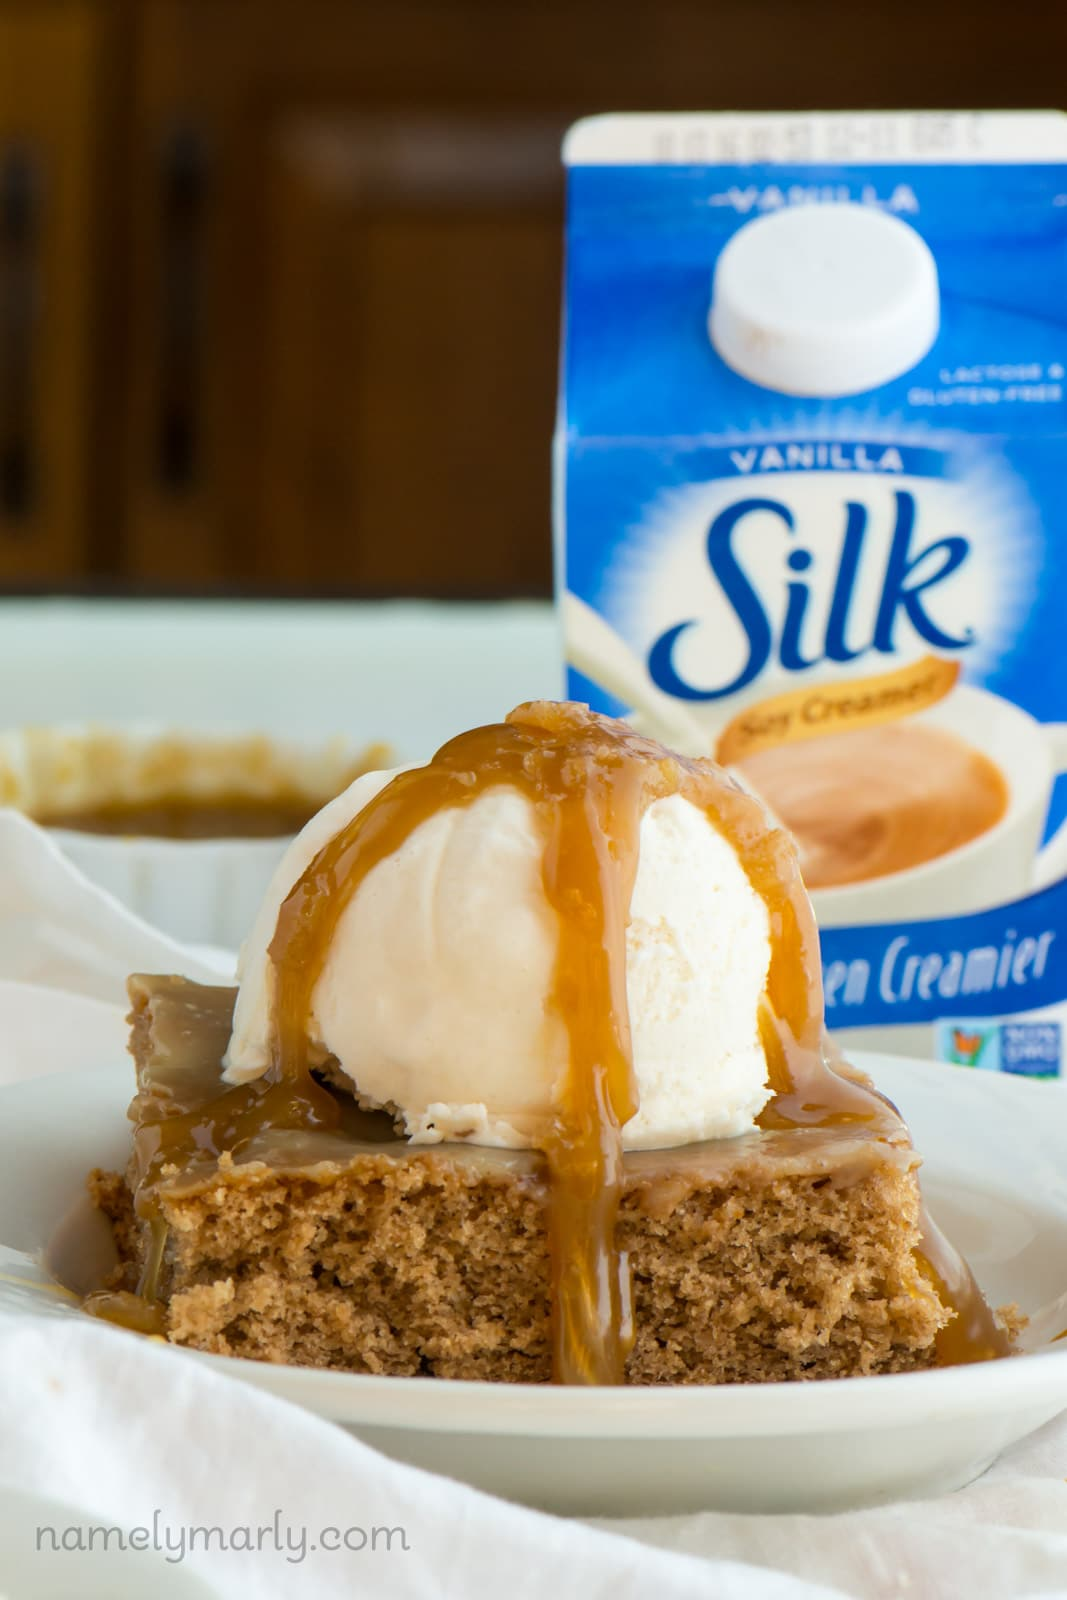 Cinnamon Roll Poke Cake with Caramel Sauce